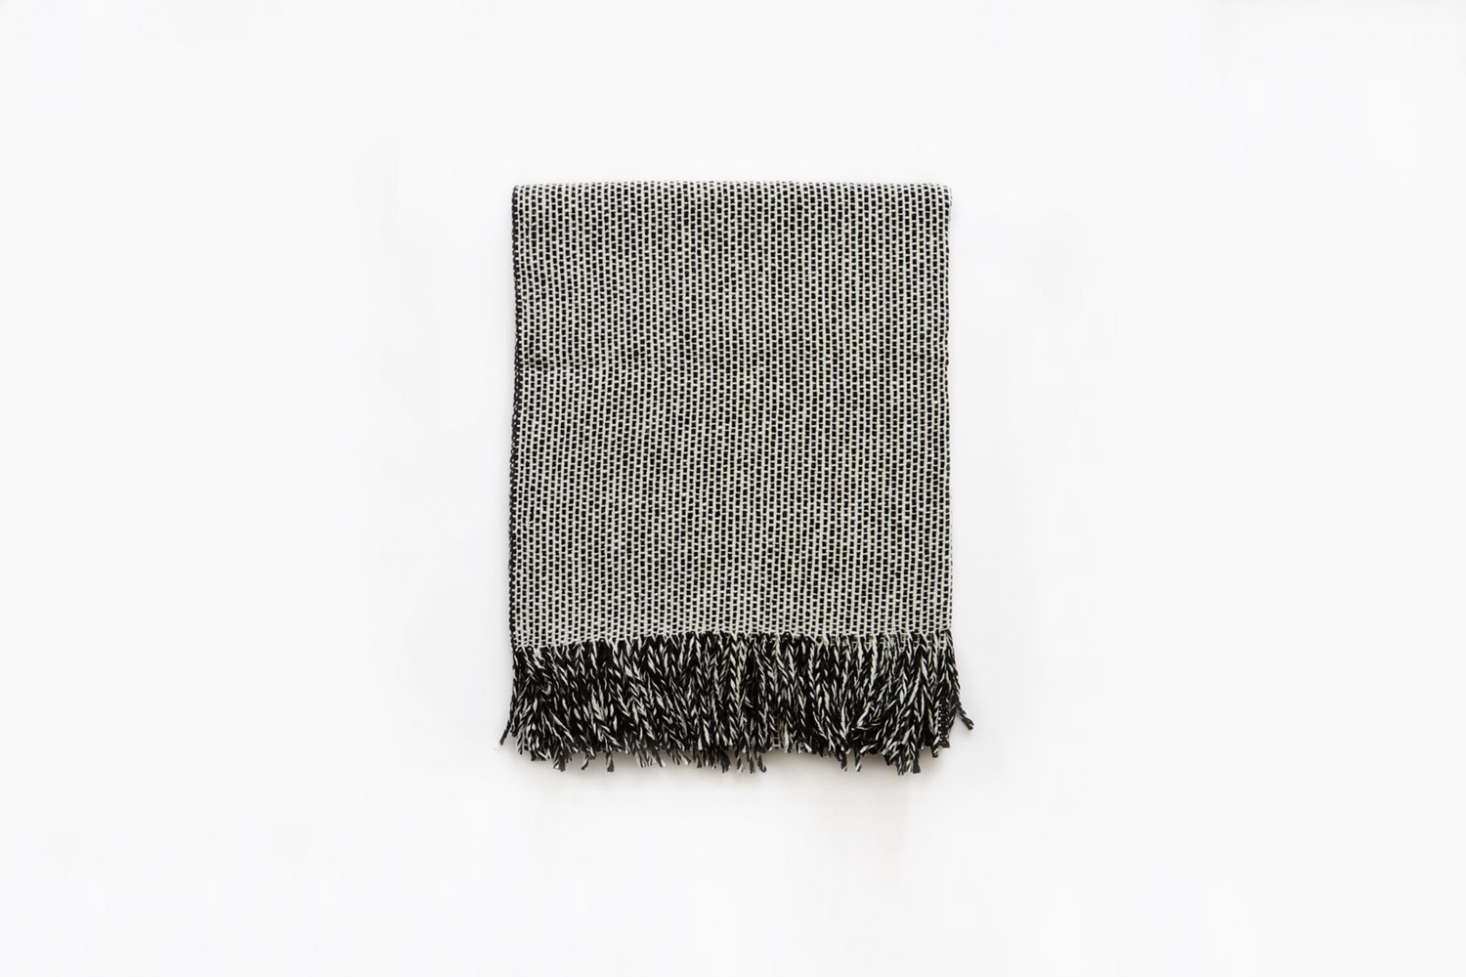 The Mourne Textiles Tweed Emphasize Blanket Monochrome III is £5 at Mourne Textiles.